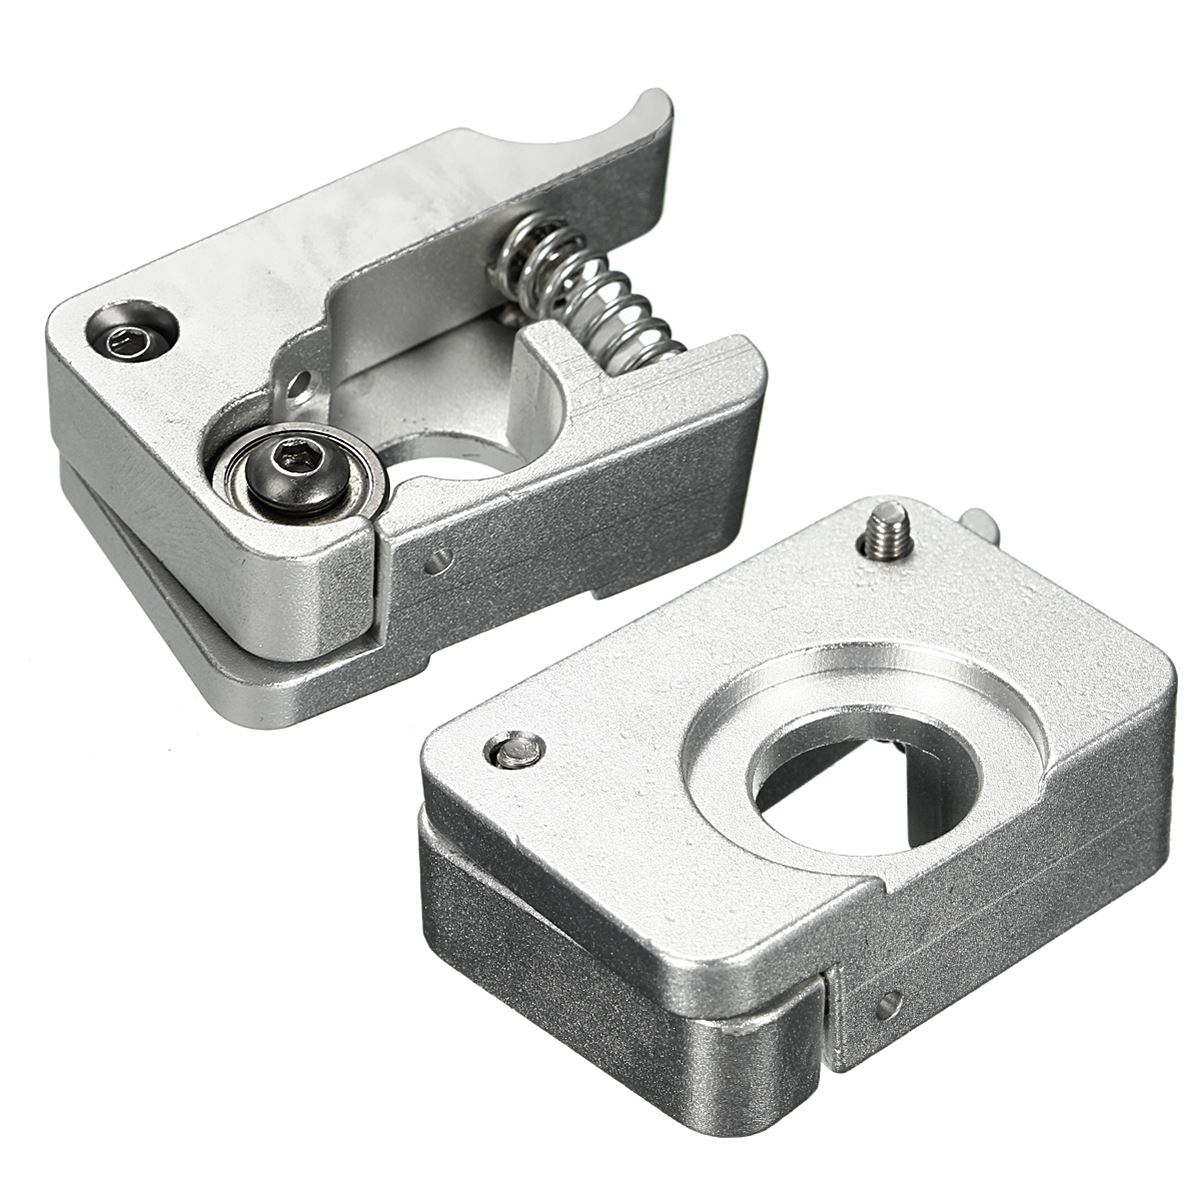 Stainless Steel Makerbot Replicator 2X Extruder , Upgrade Edition